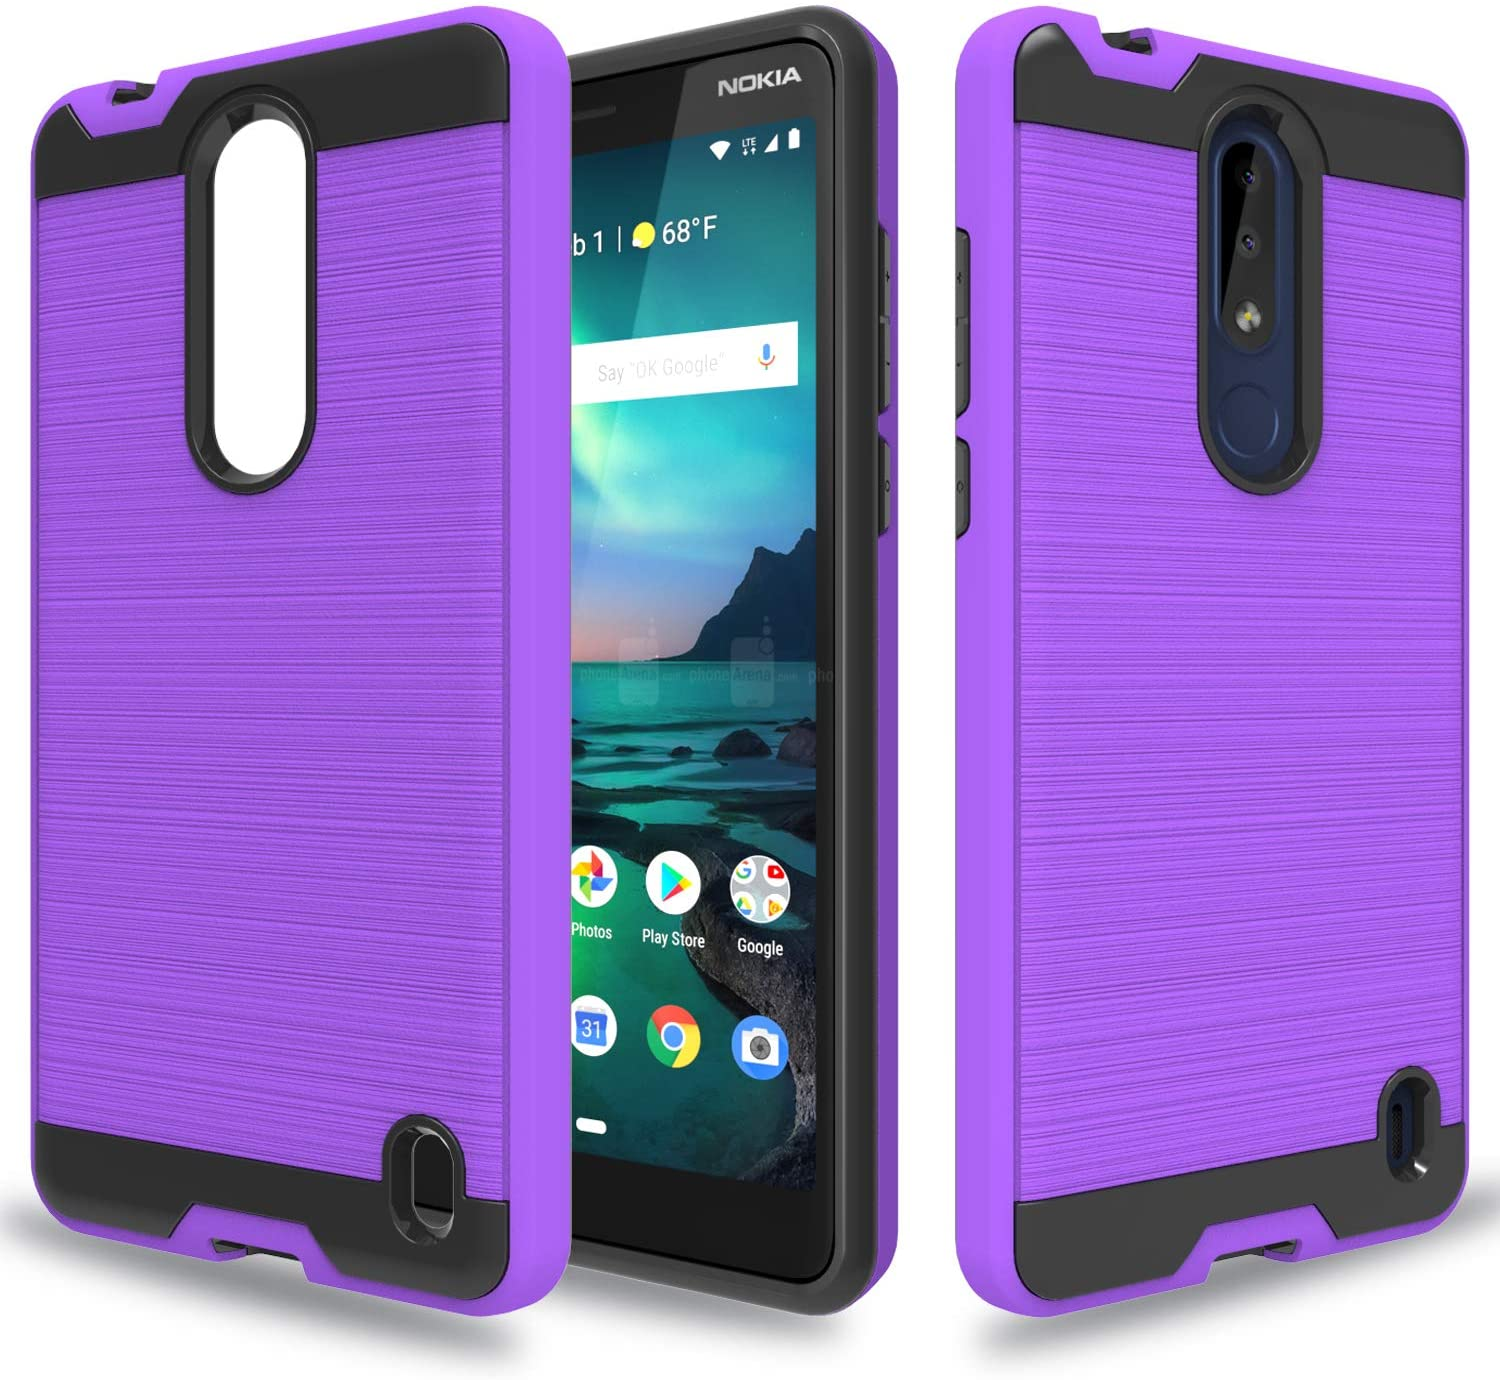 Wtiaw for:Nokia 3.1 Plus Case,Nokia 3.1 Plus Phone Cases,[TPU+PC Material] [Brushed Metal Texture] Hybrid Dual Layer Defender Case for Nokia 3.1 Plus-CL Purple